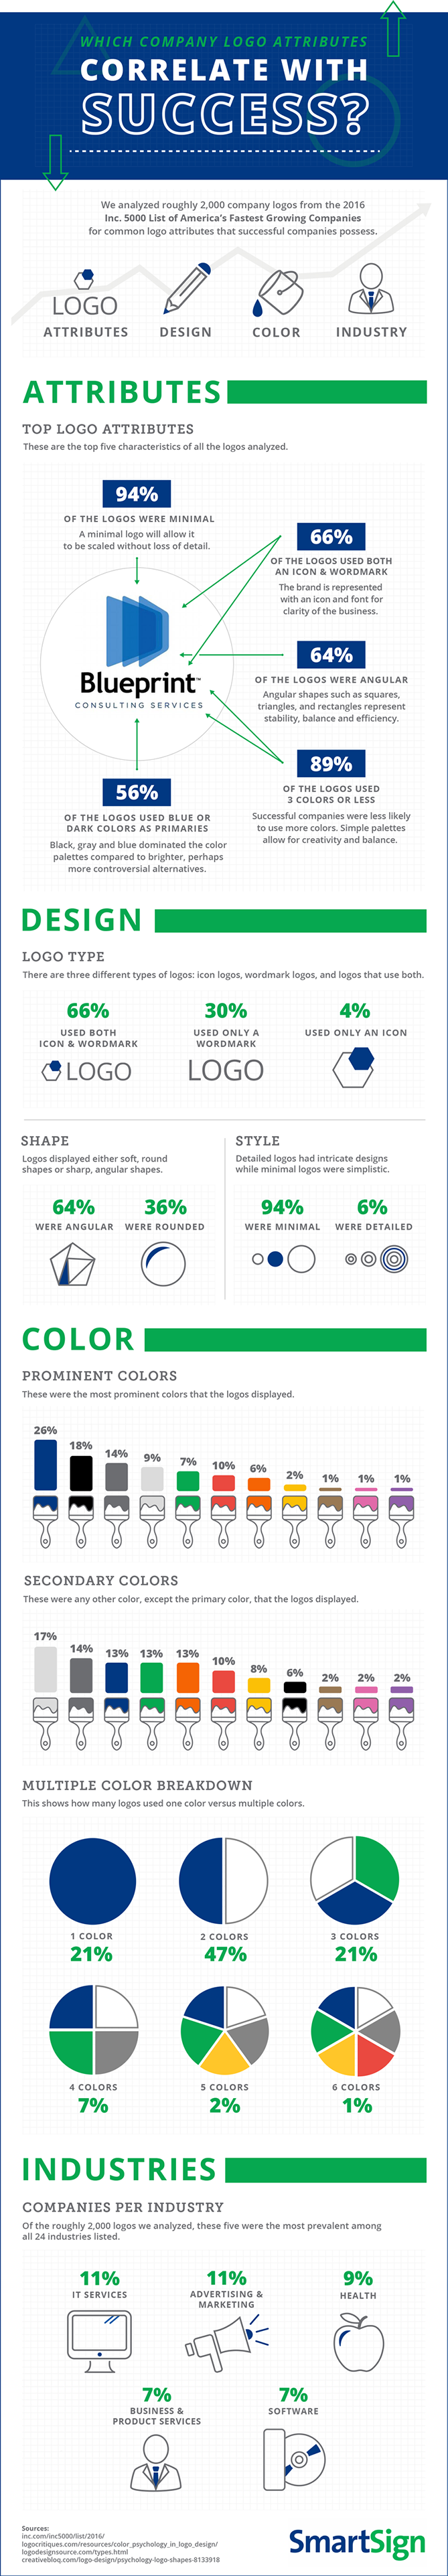 Somebody Creative - Company Logos Correlate with Success Infographic